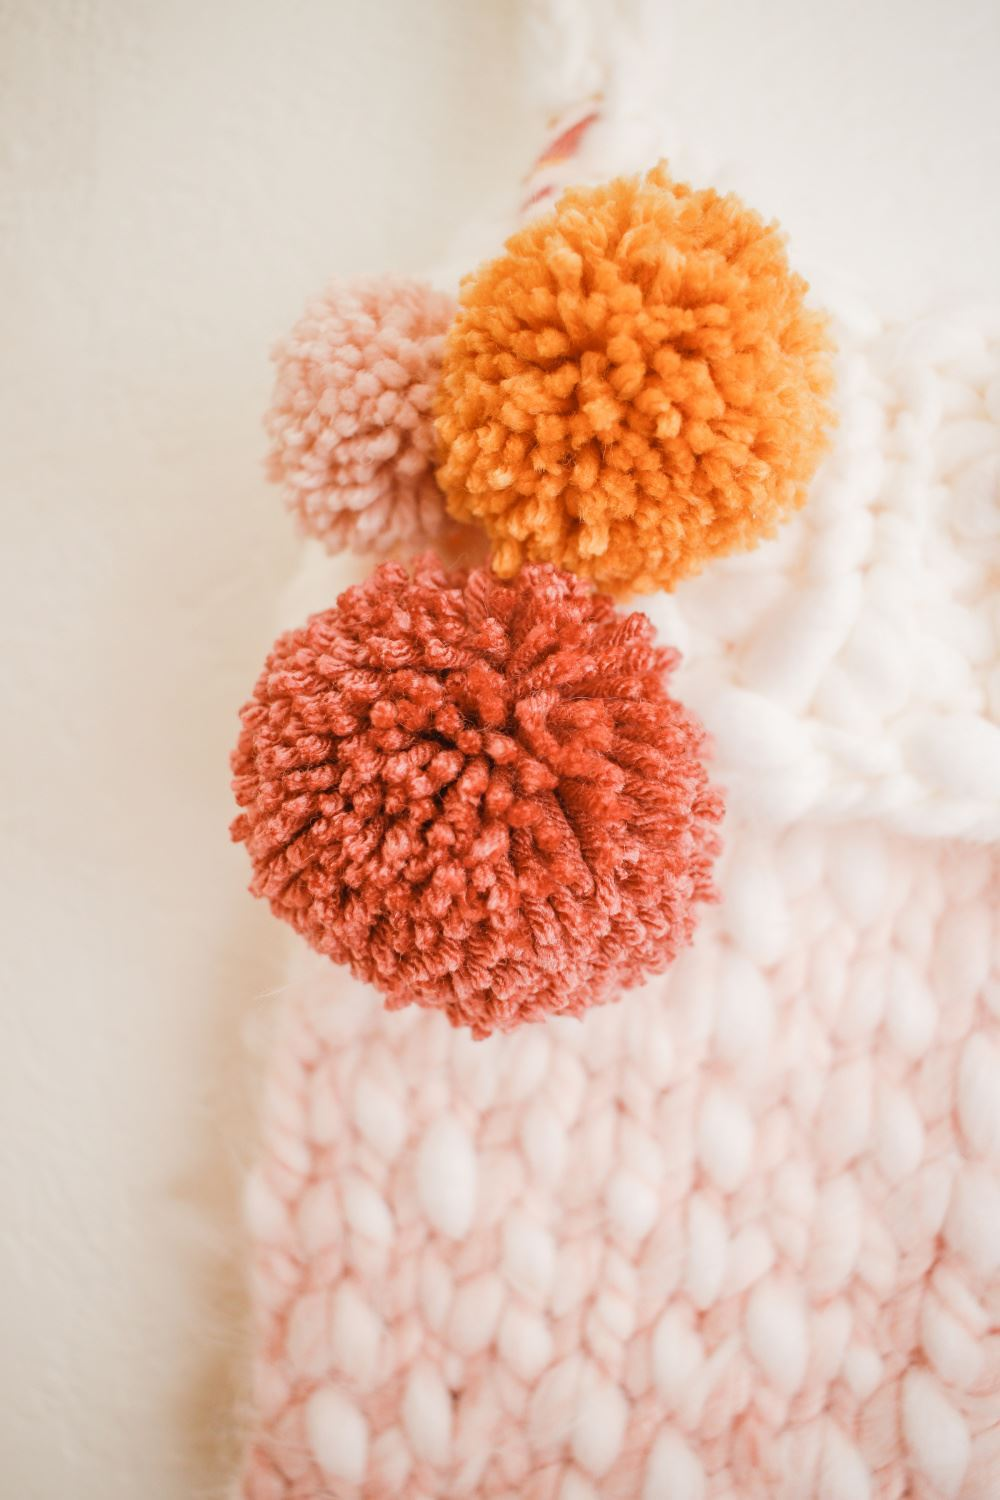 Attach pompoms to stockings